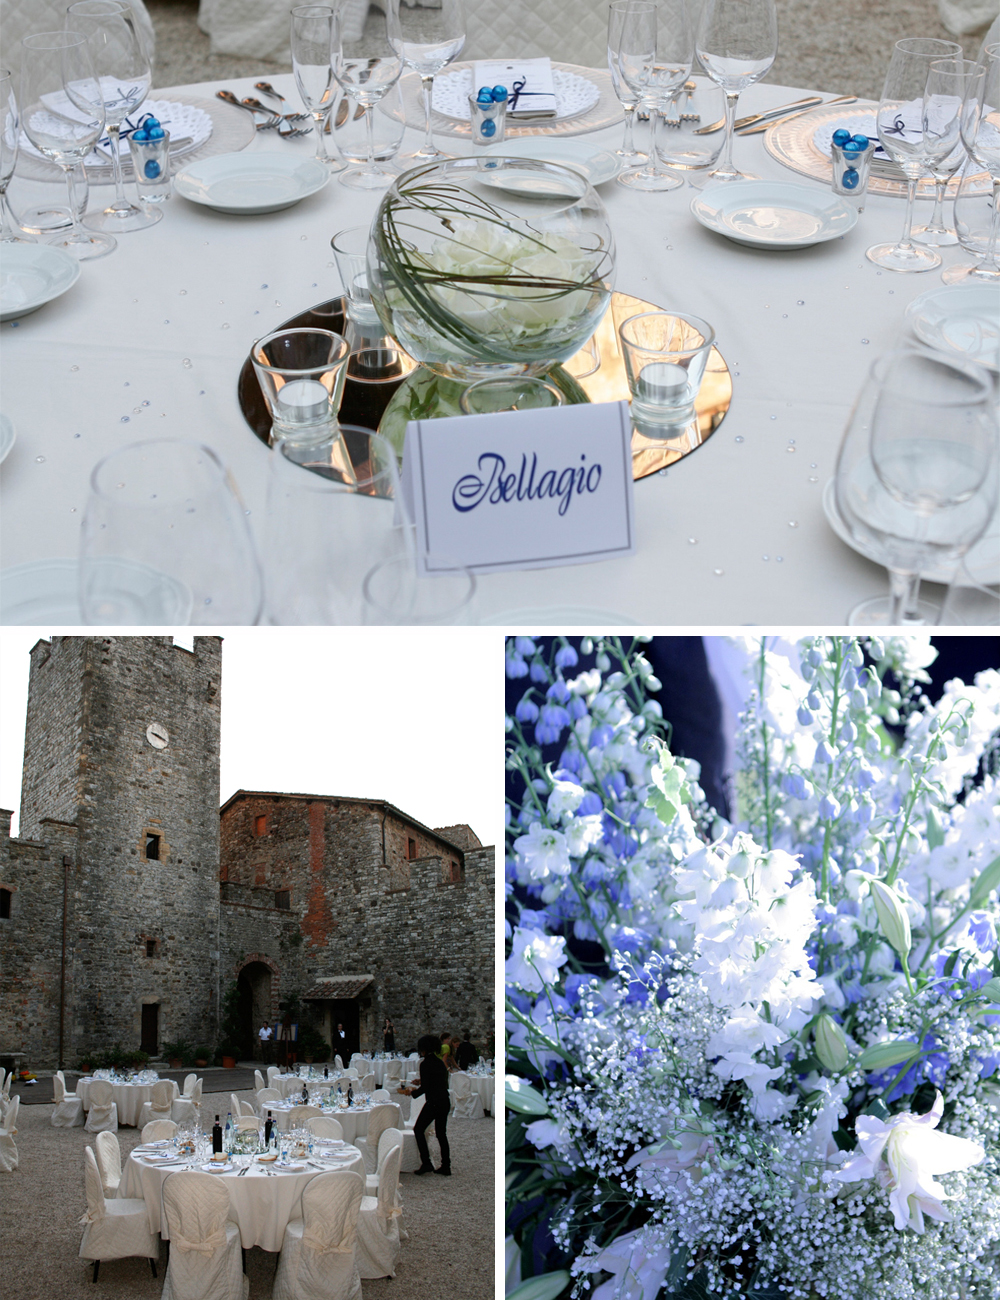 TUSCANY CASTLE WEDDING ITALY 3